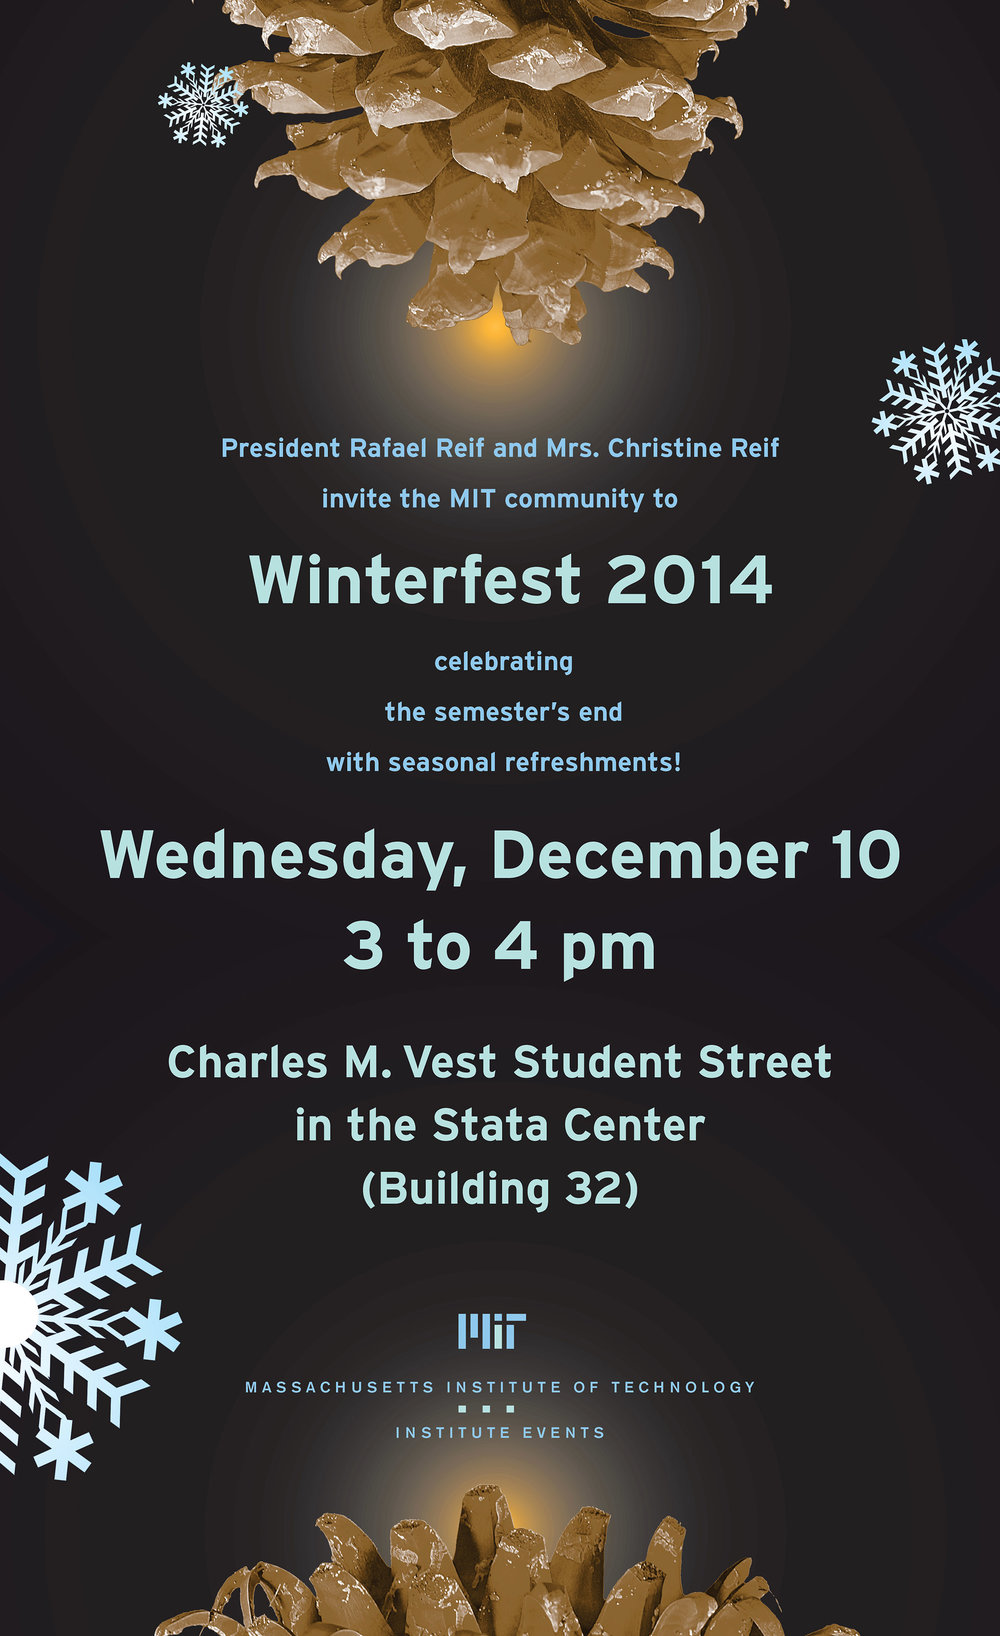 Winterfest event poster